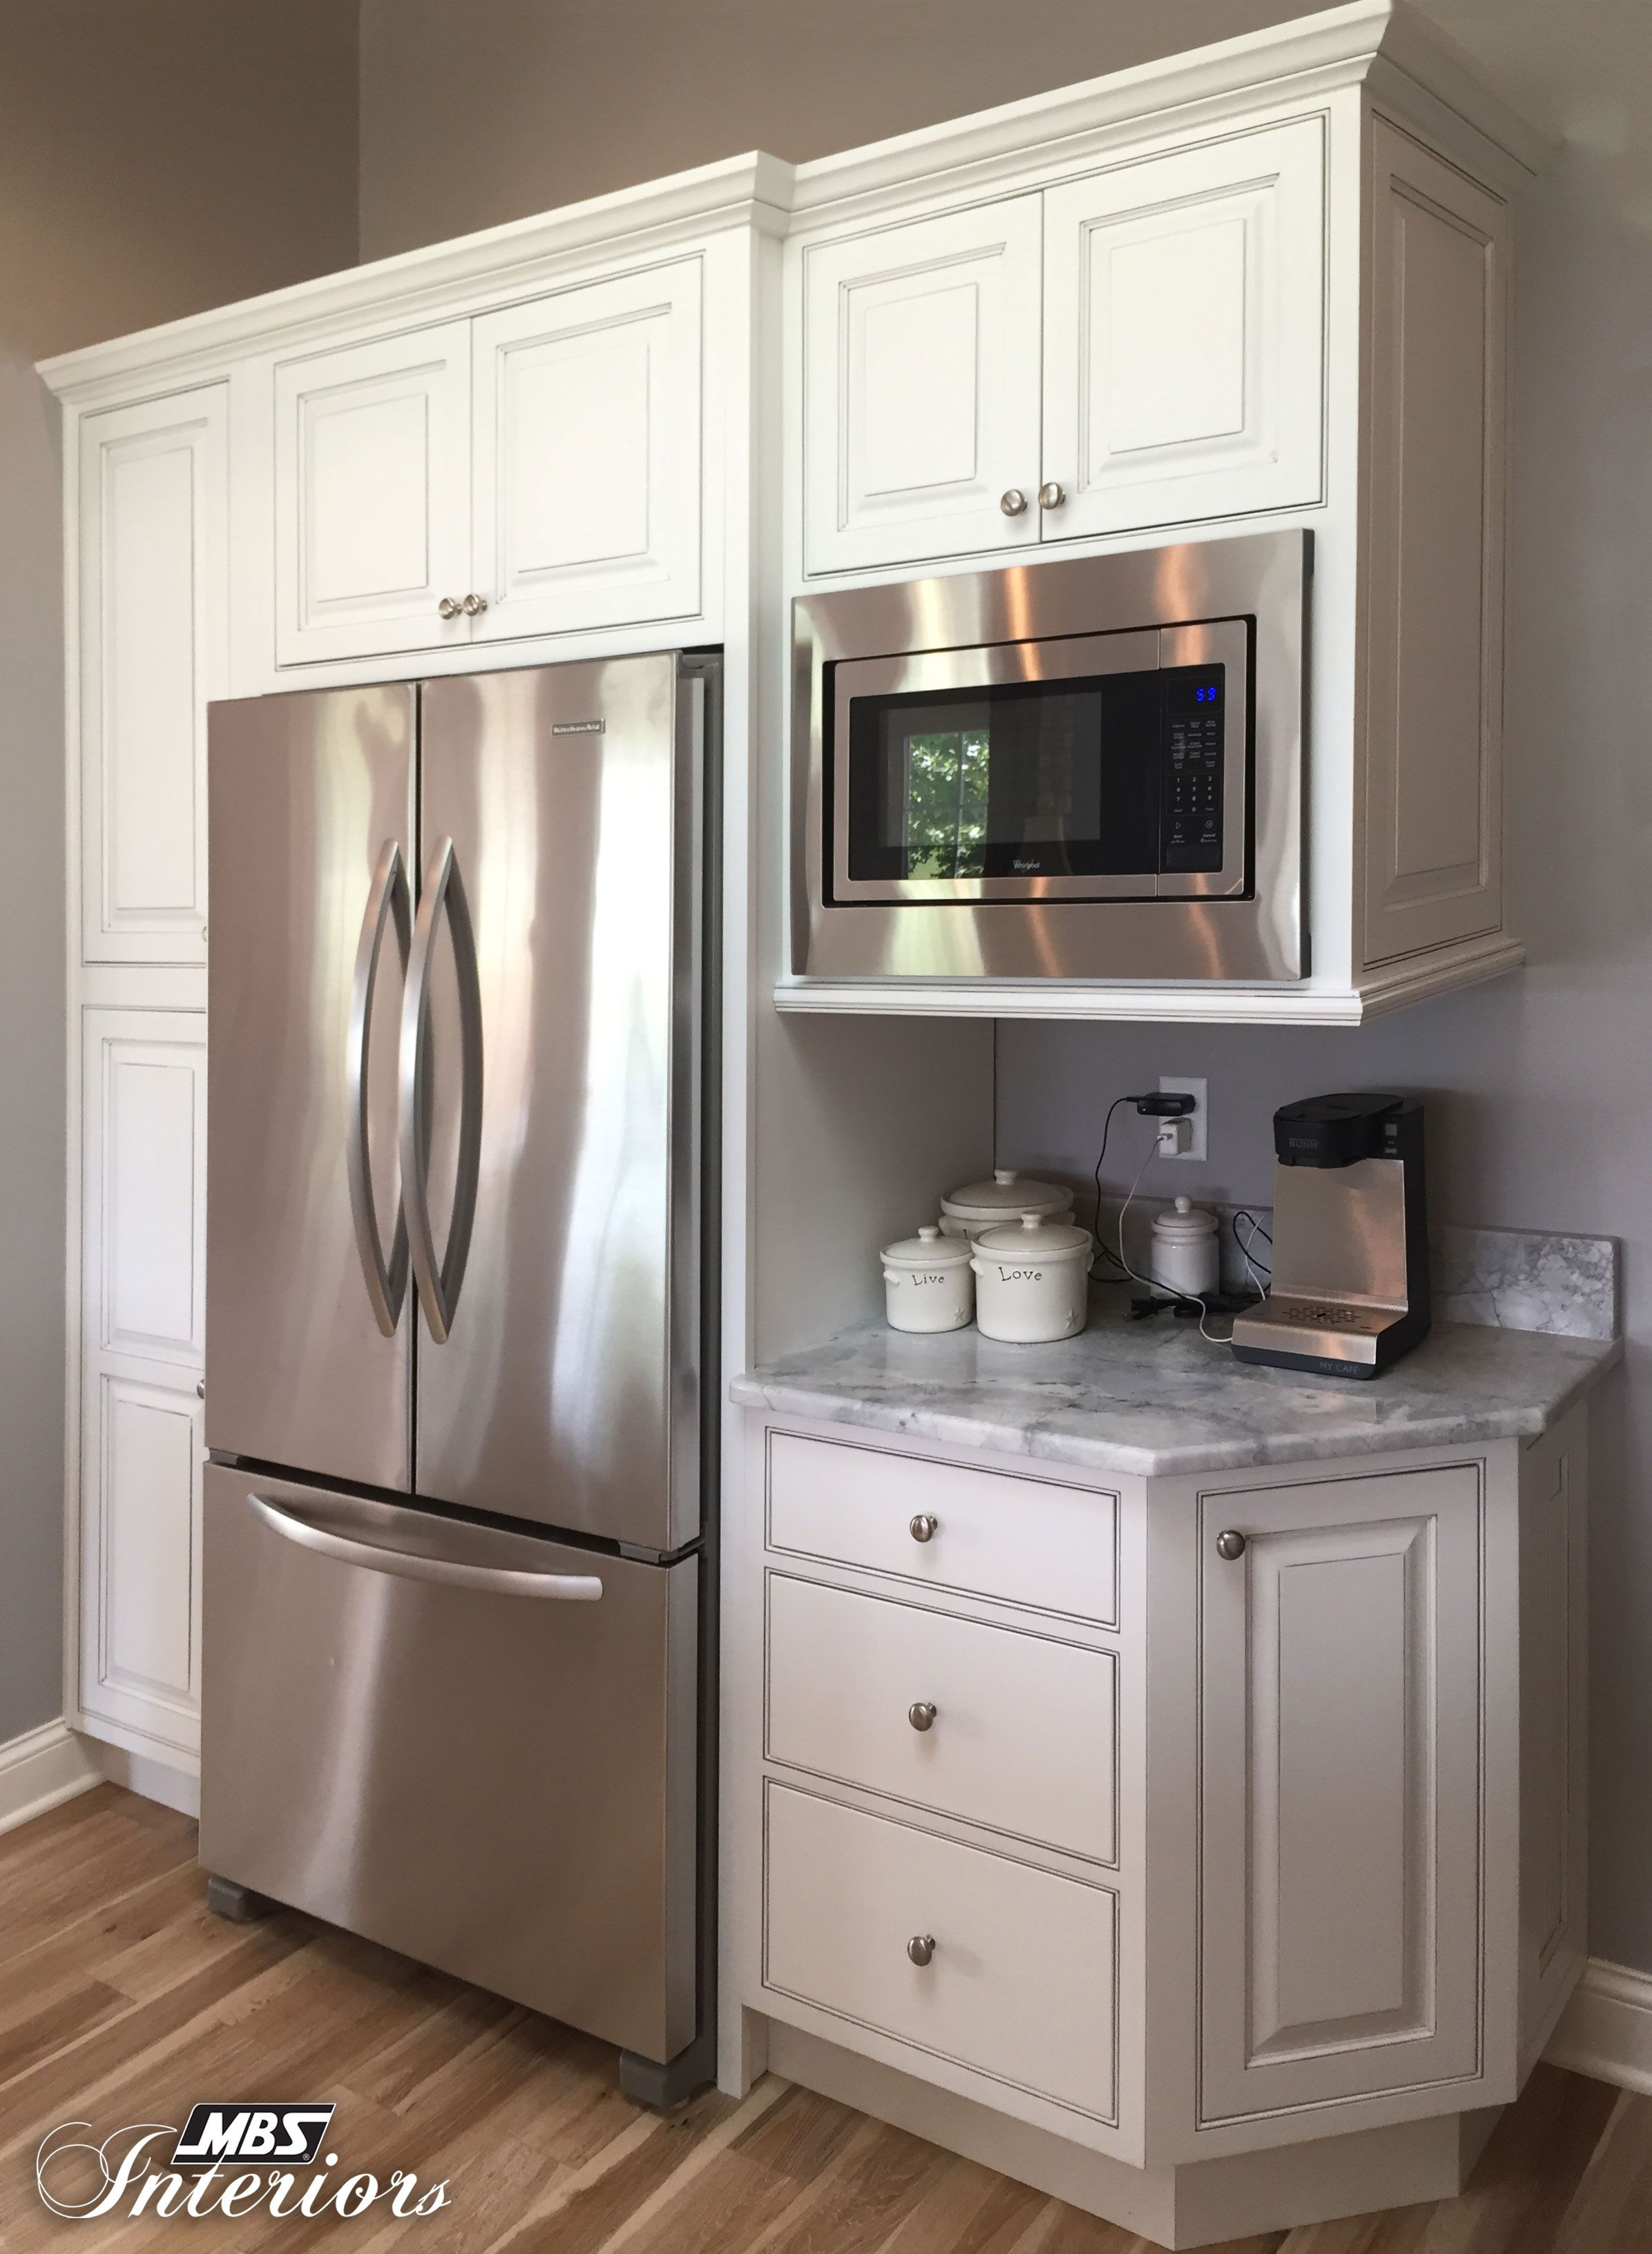 I Like The Microwave How It S Built Into The Cabinet And Separate From The Microwave Diy Kitchen Renovation Kitchen Layout New Kitchen Cabinets